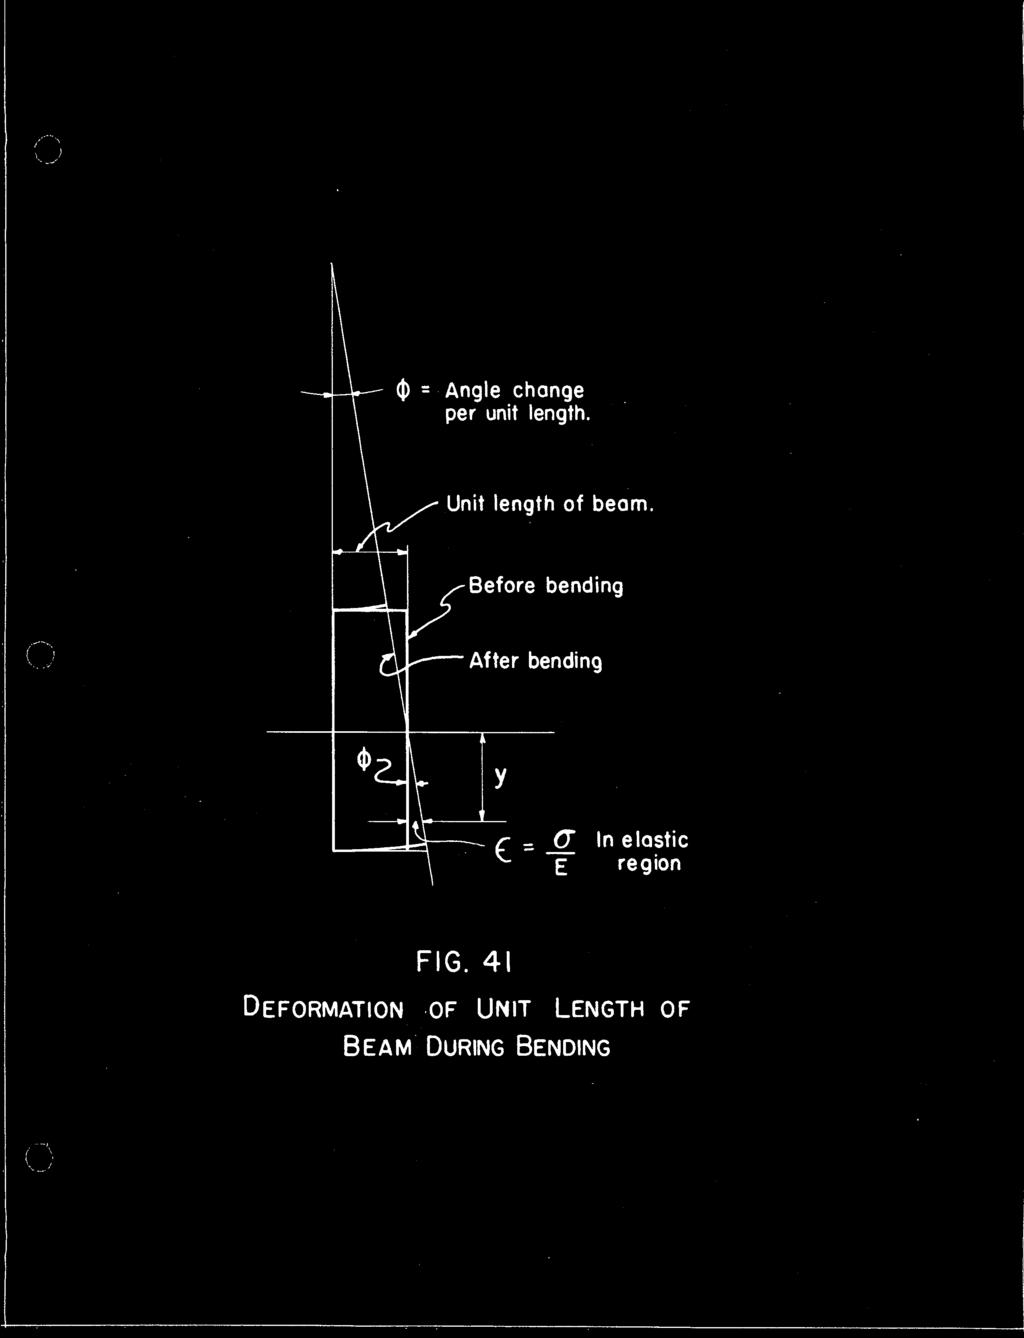 Plastic Behavior Of Wf Beams January Pdf F67 Wiring Diagram 71 Fig 39 Test No2 Swf40 Annealed After Completion 40 No3 S As Deliverec